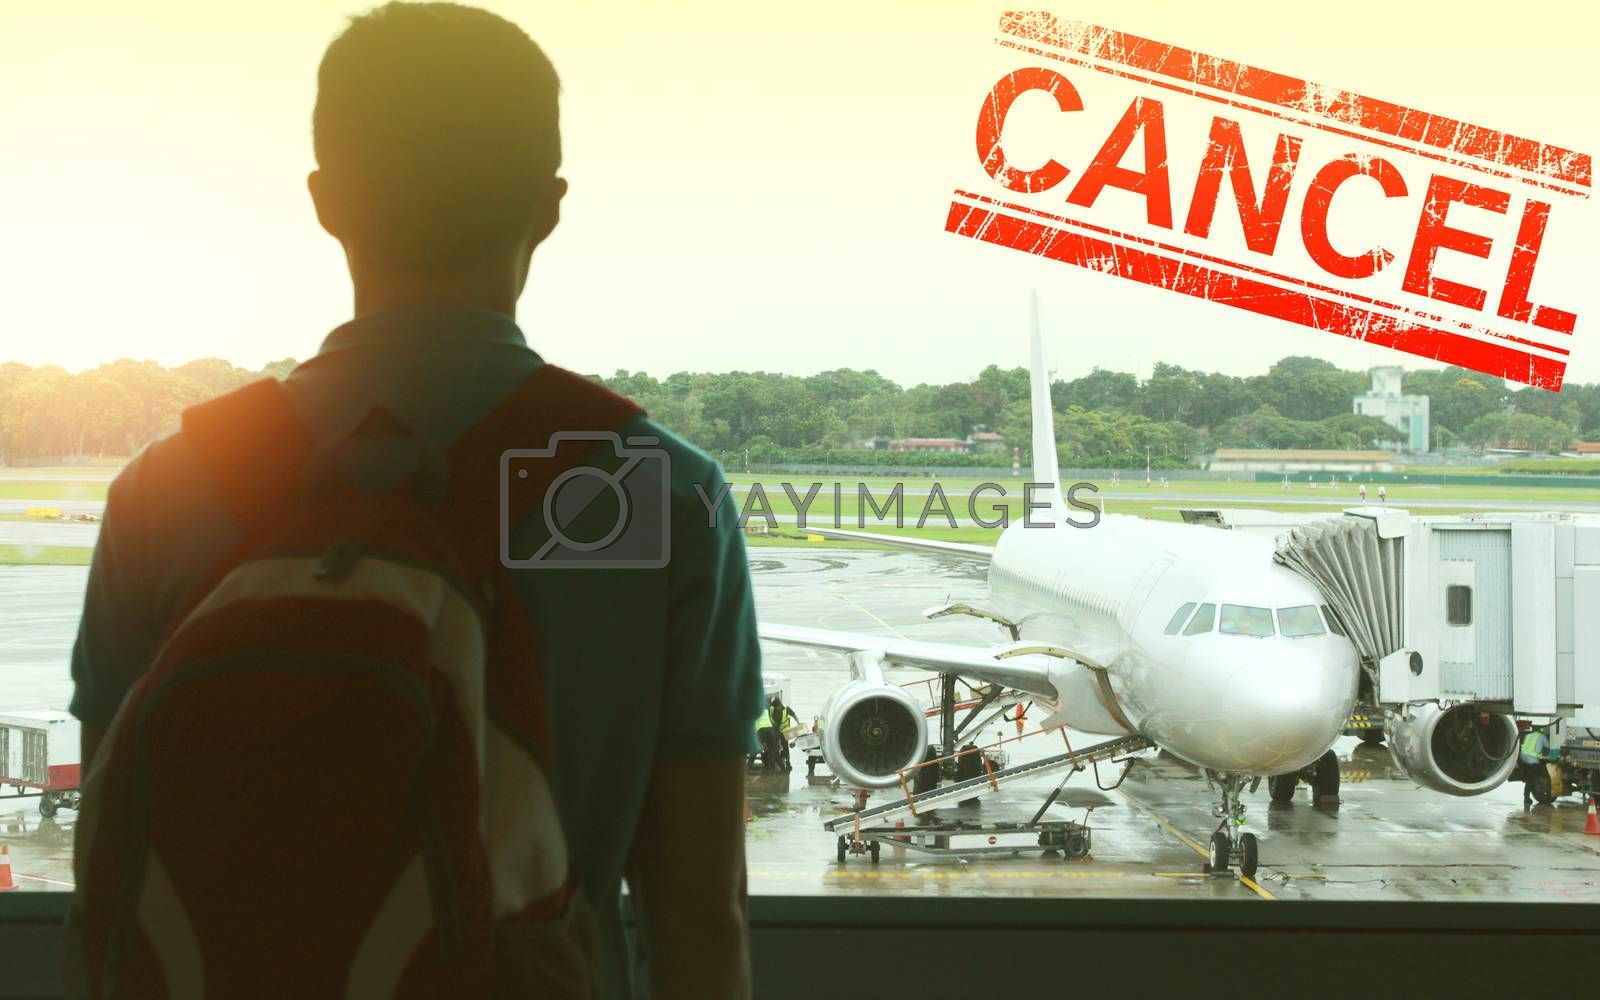 Flights were cancelled due to the spread of the coronavirus, pandemic covid 19.  Crisis in aviation, airline and industry due to corona virus covid-19.